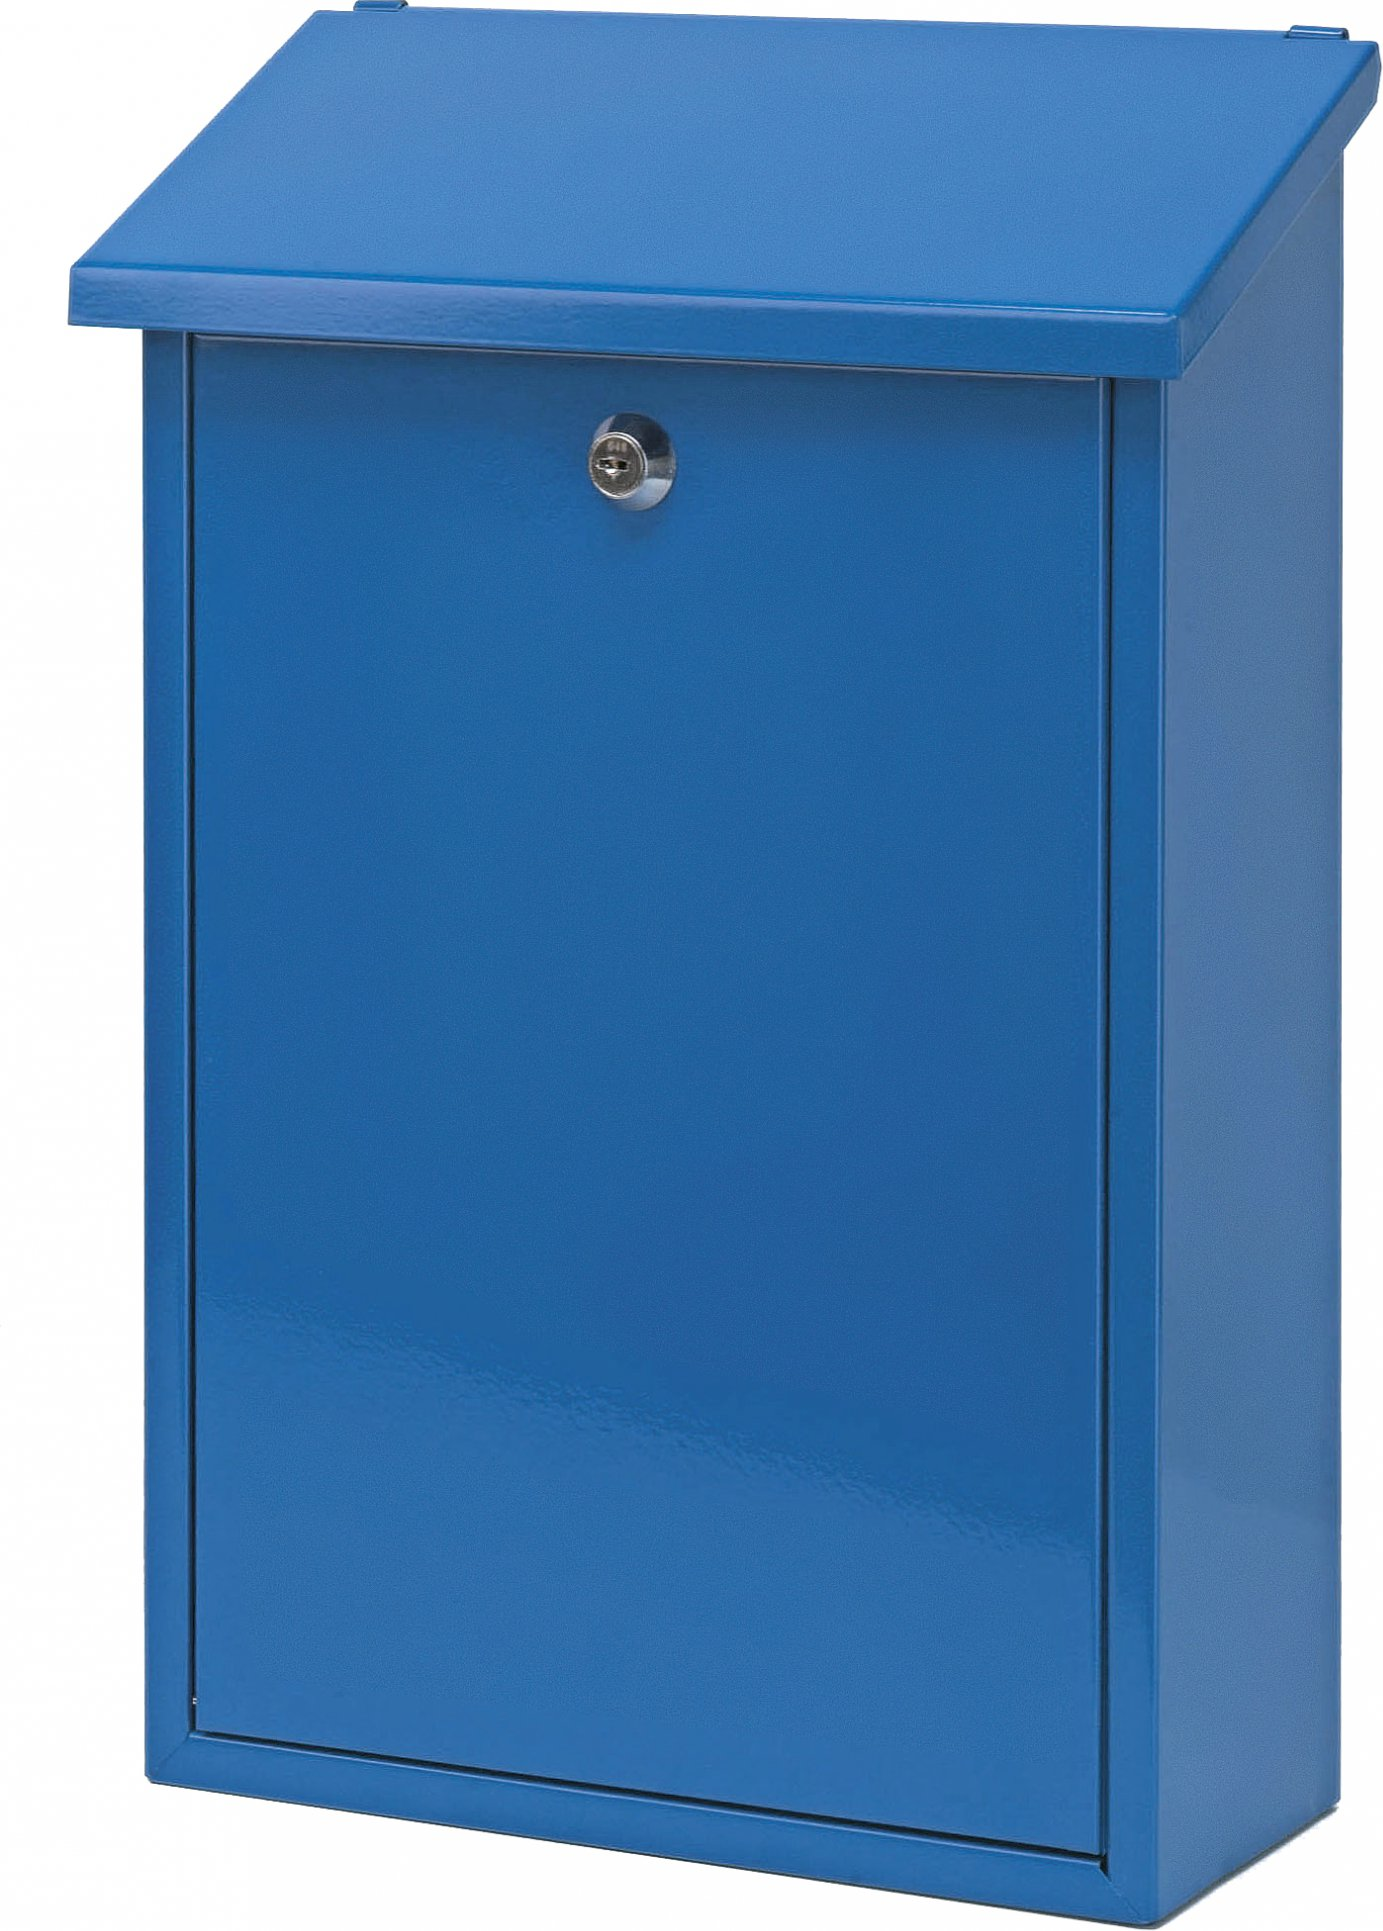 Benton wall mounted mailbox